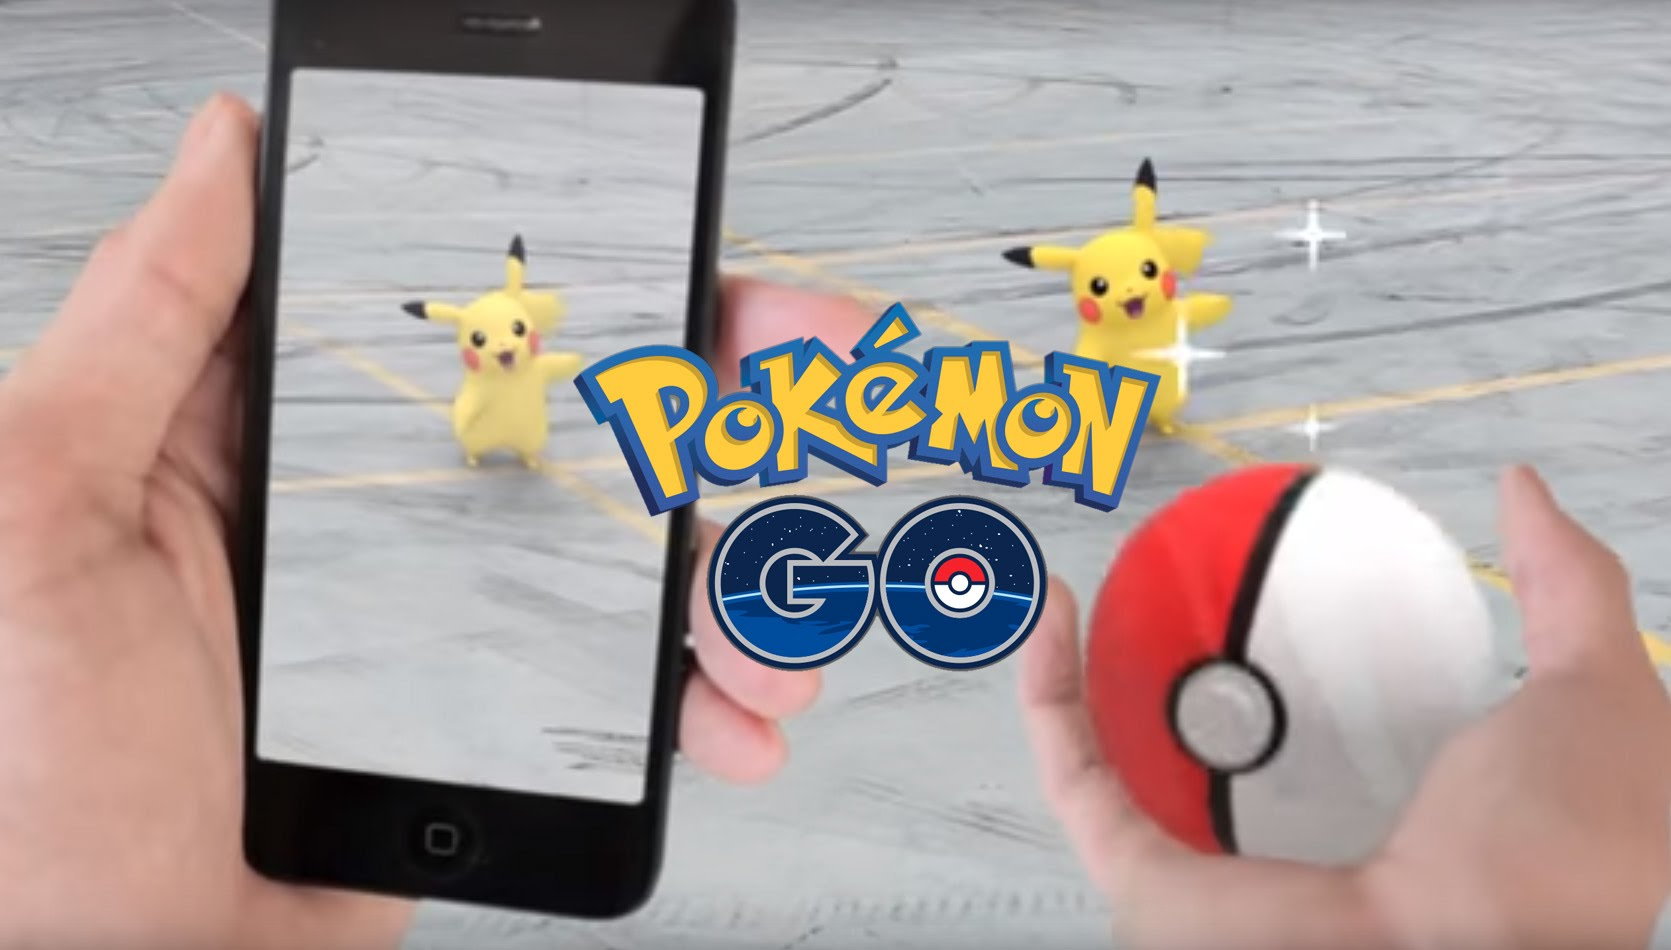 Augmented Reality Technology Review by the case Pokémon Go